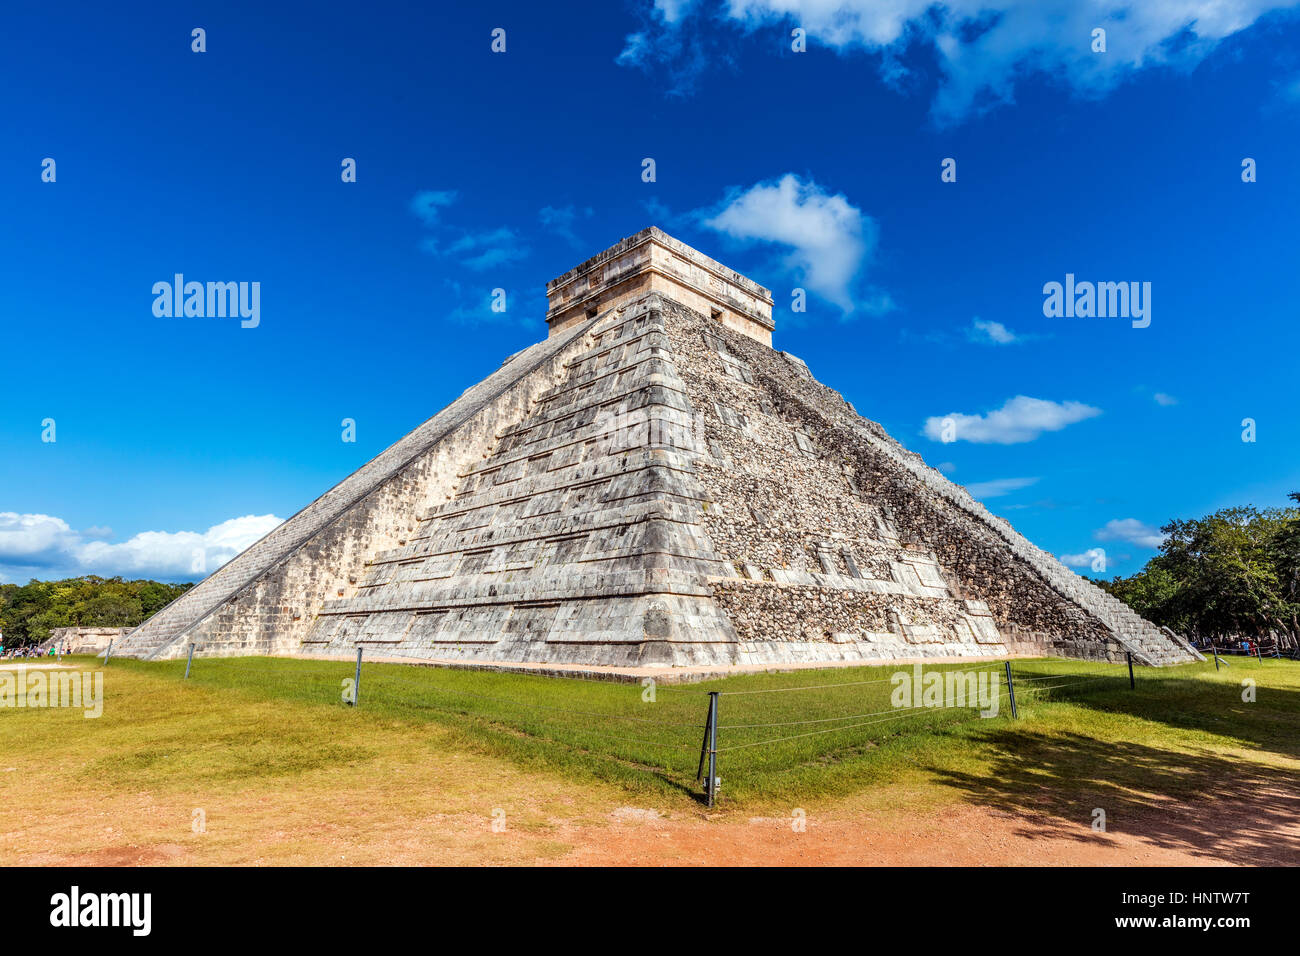 Stock Photo - Temple of Kukulcan in Chichen Itza, Mexico - Stock Image